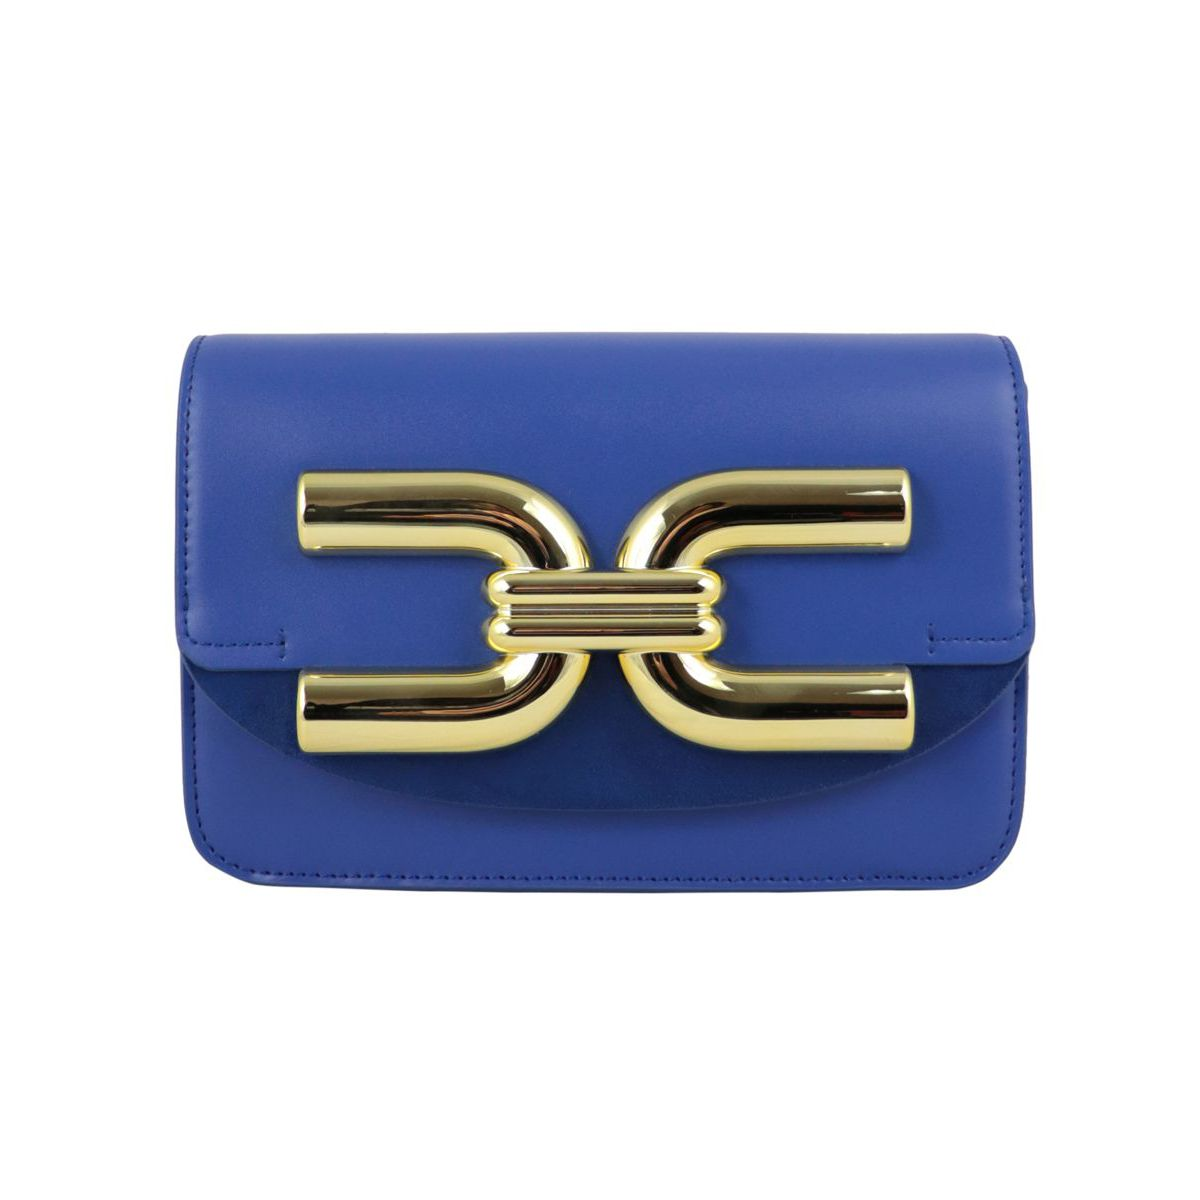 Synthetic leather bag with large logo and chain shoulder strap Cobalt Elisabetta Franchi